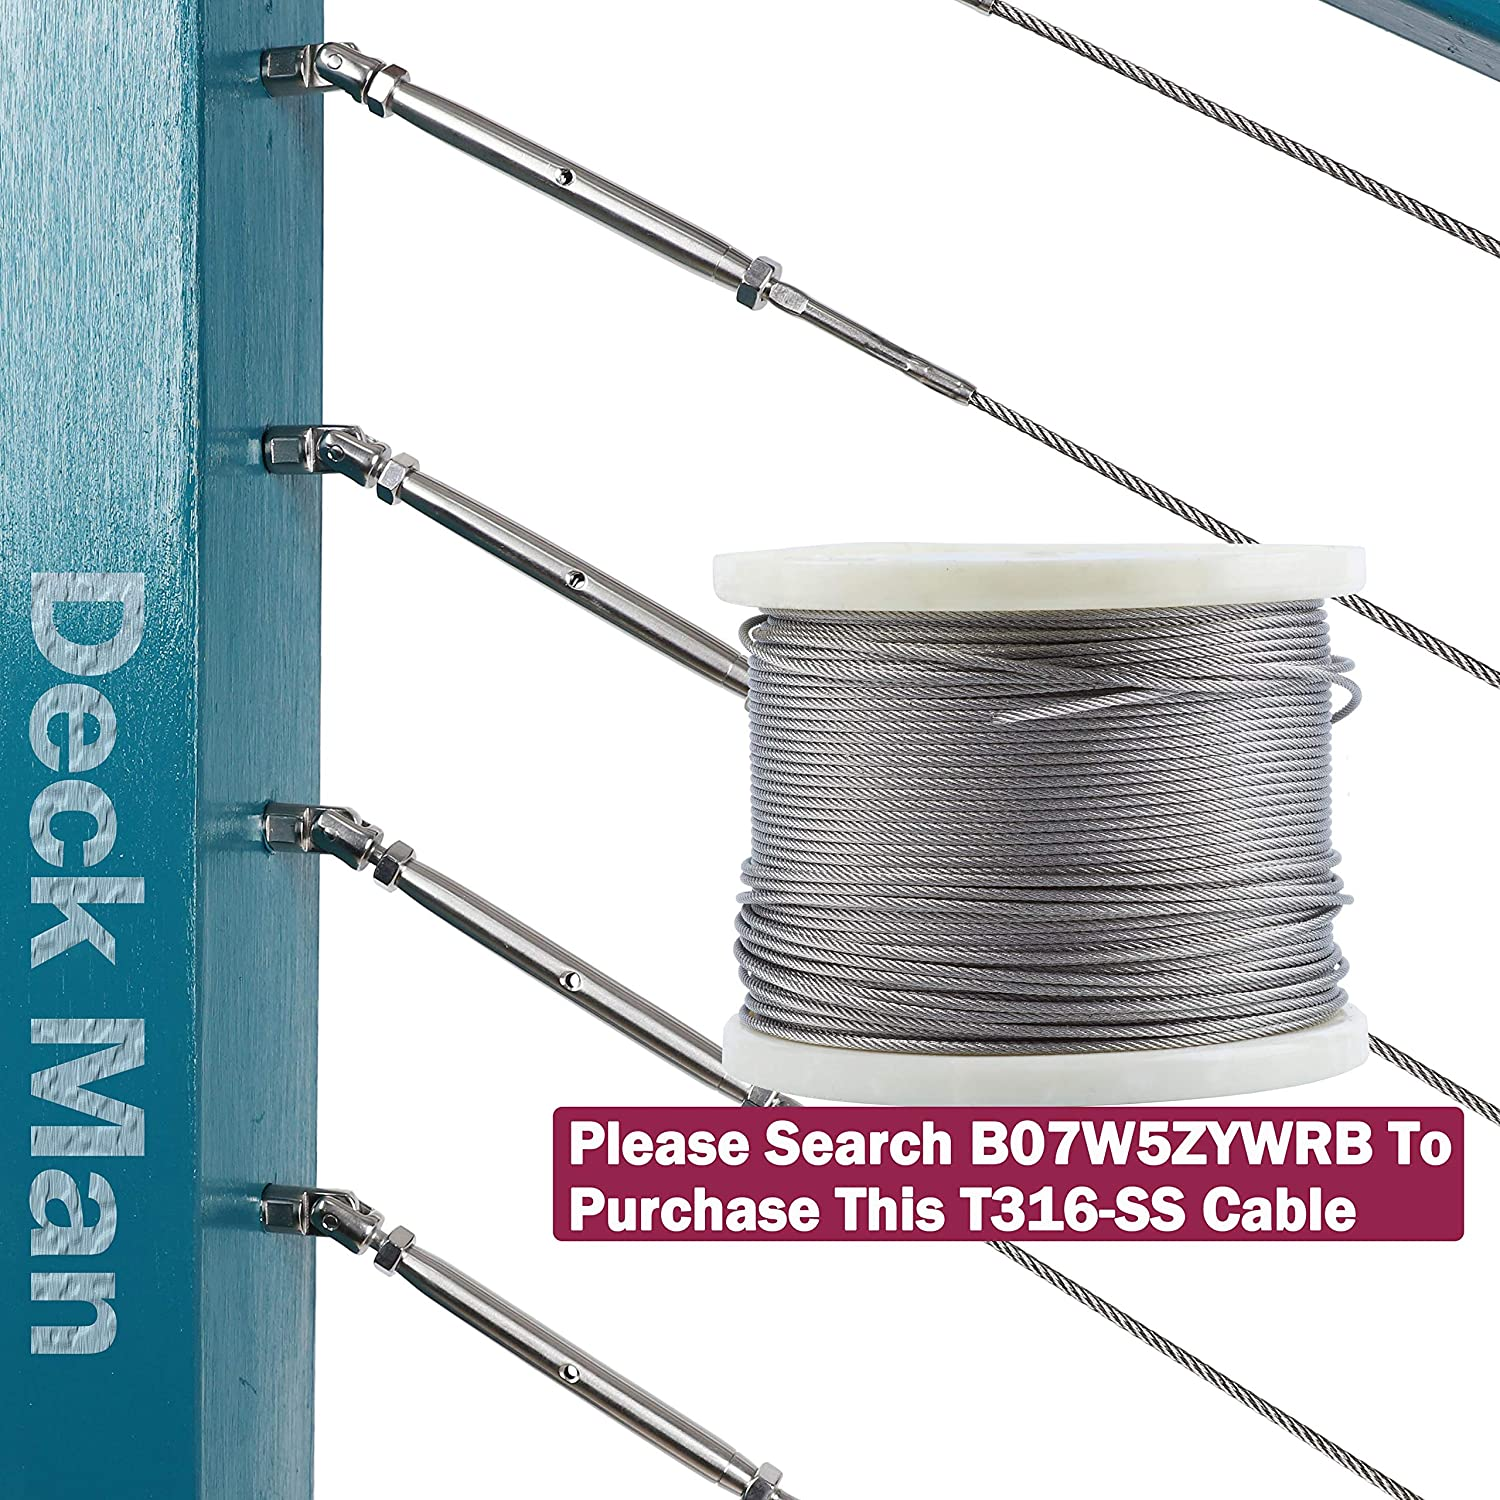 Deck Man 1//8 inch T316 Stainless Steel Adjustable Angle Single-Screw Cable Railing Kit//Hardware for Wood Posts,Marine Grade 2 Pairs